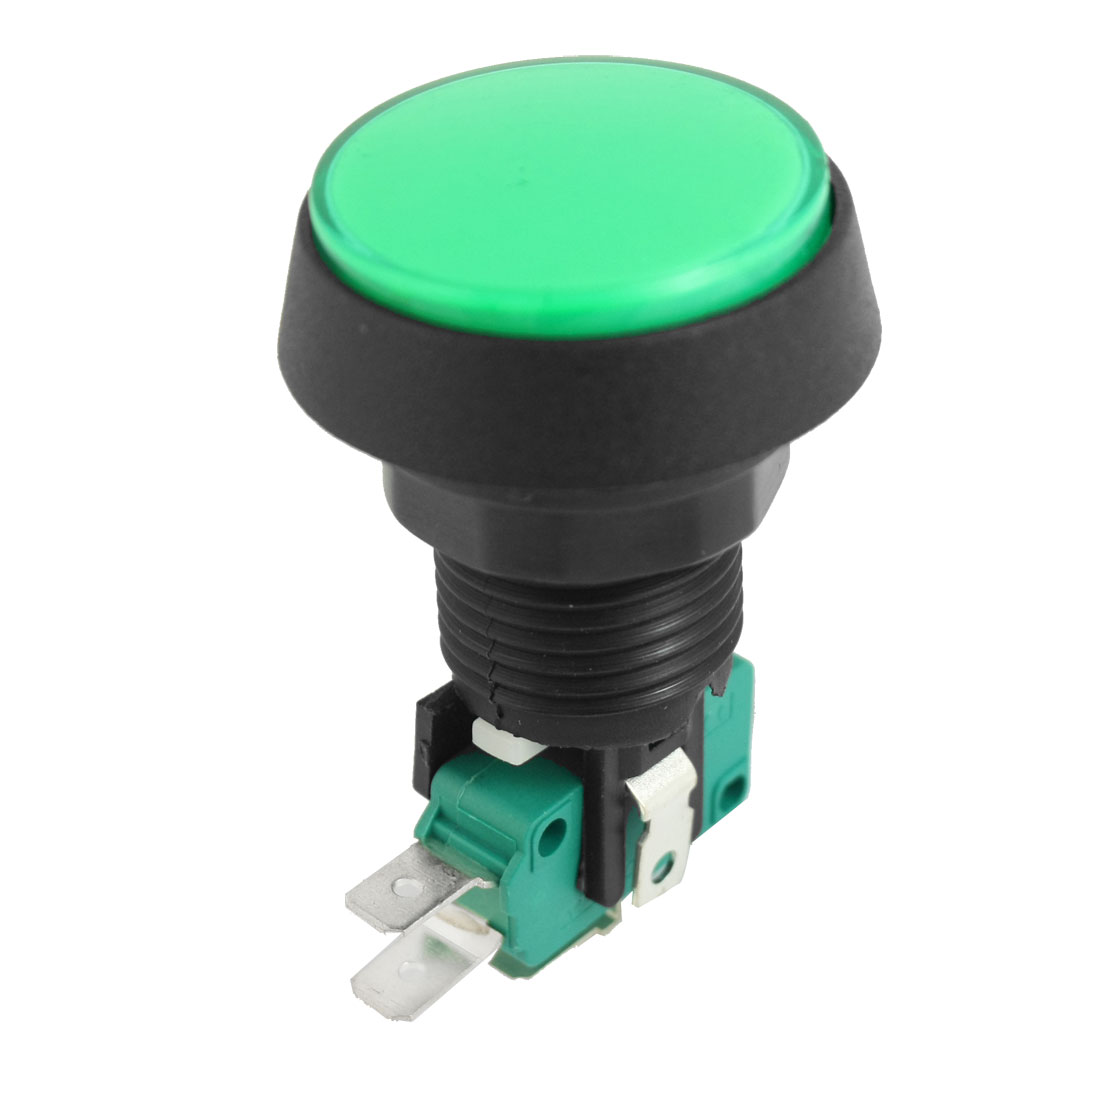 AC 125V 250V 16A 22mm Thread Panel Mounting SPDT 1NO 1NC Momentary Green Plastic Arcade Game Limit Push Button Switch